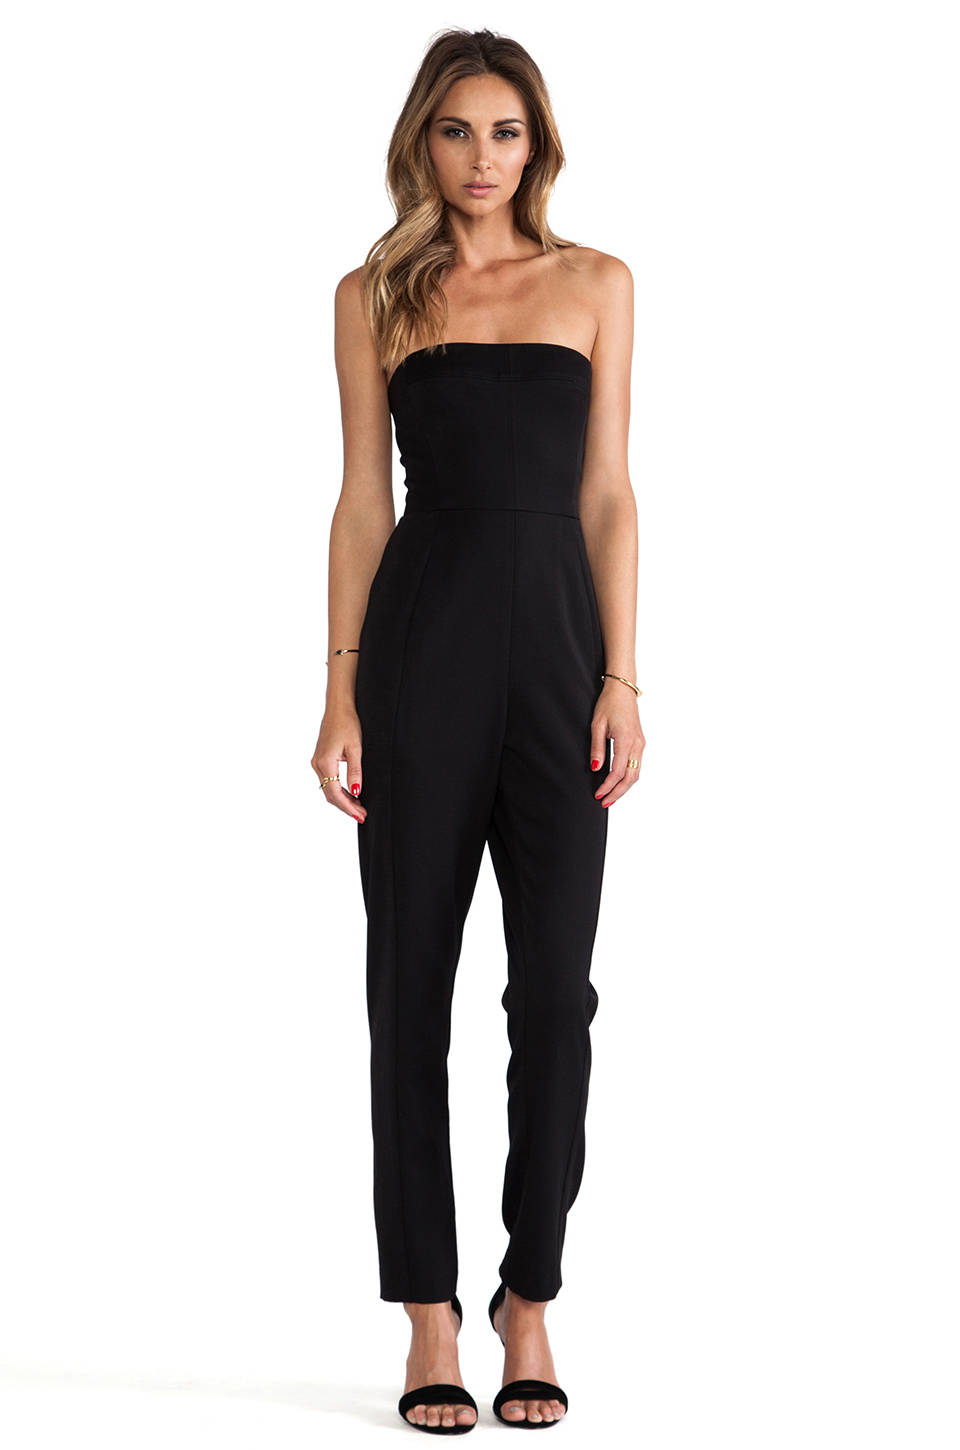 Shop for jumpsuits and rompers for women at taradsod.tk Find a wide range of women's jumpsuit and romper styles from top brands. Free shipping and returns.